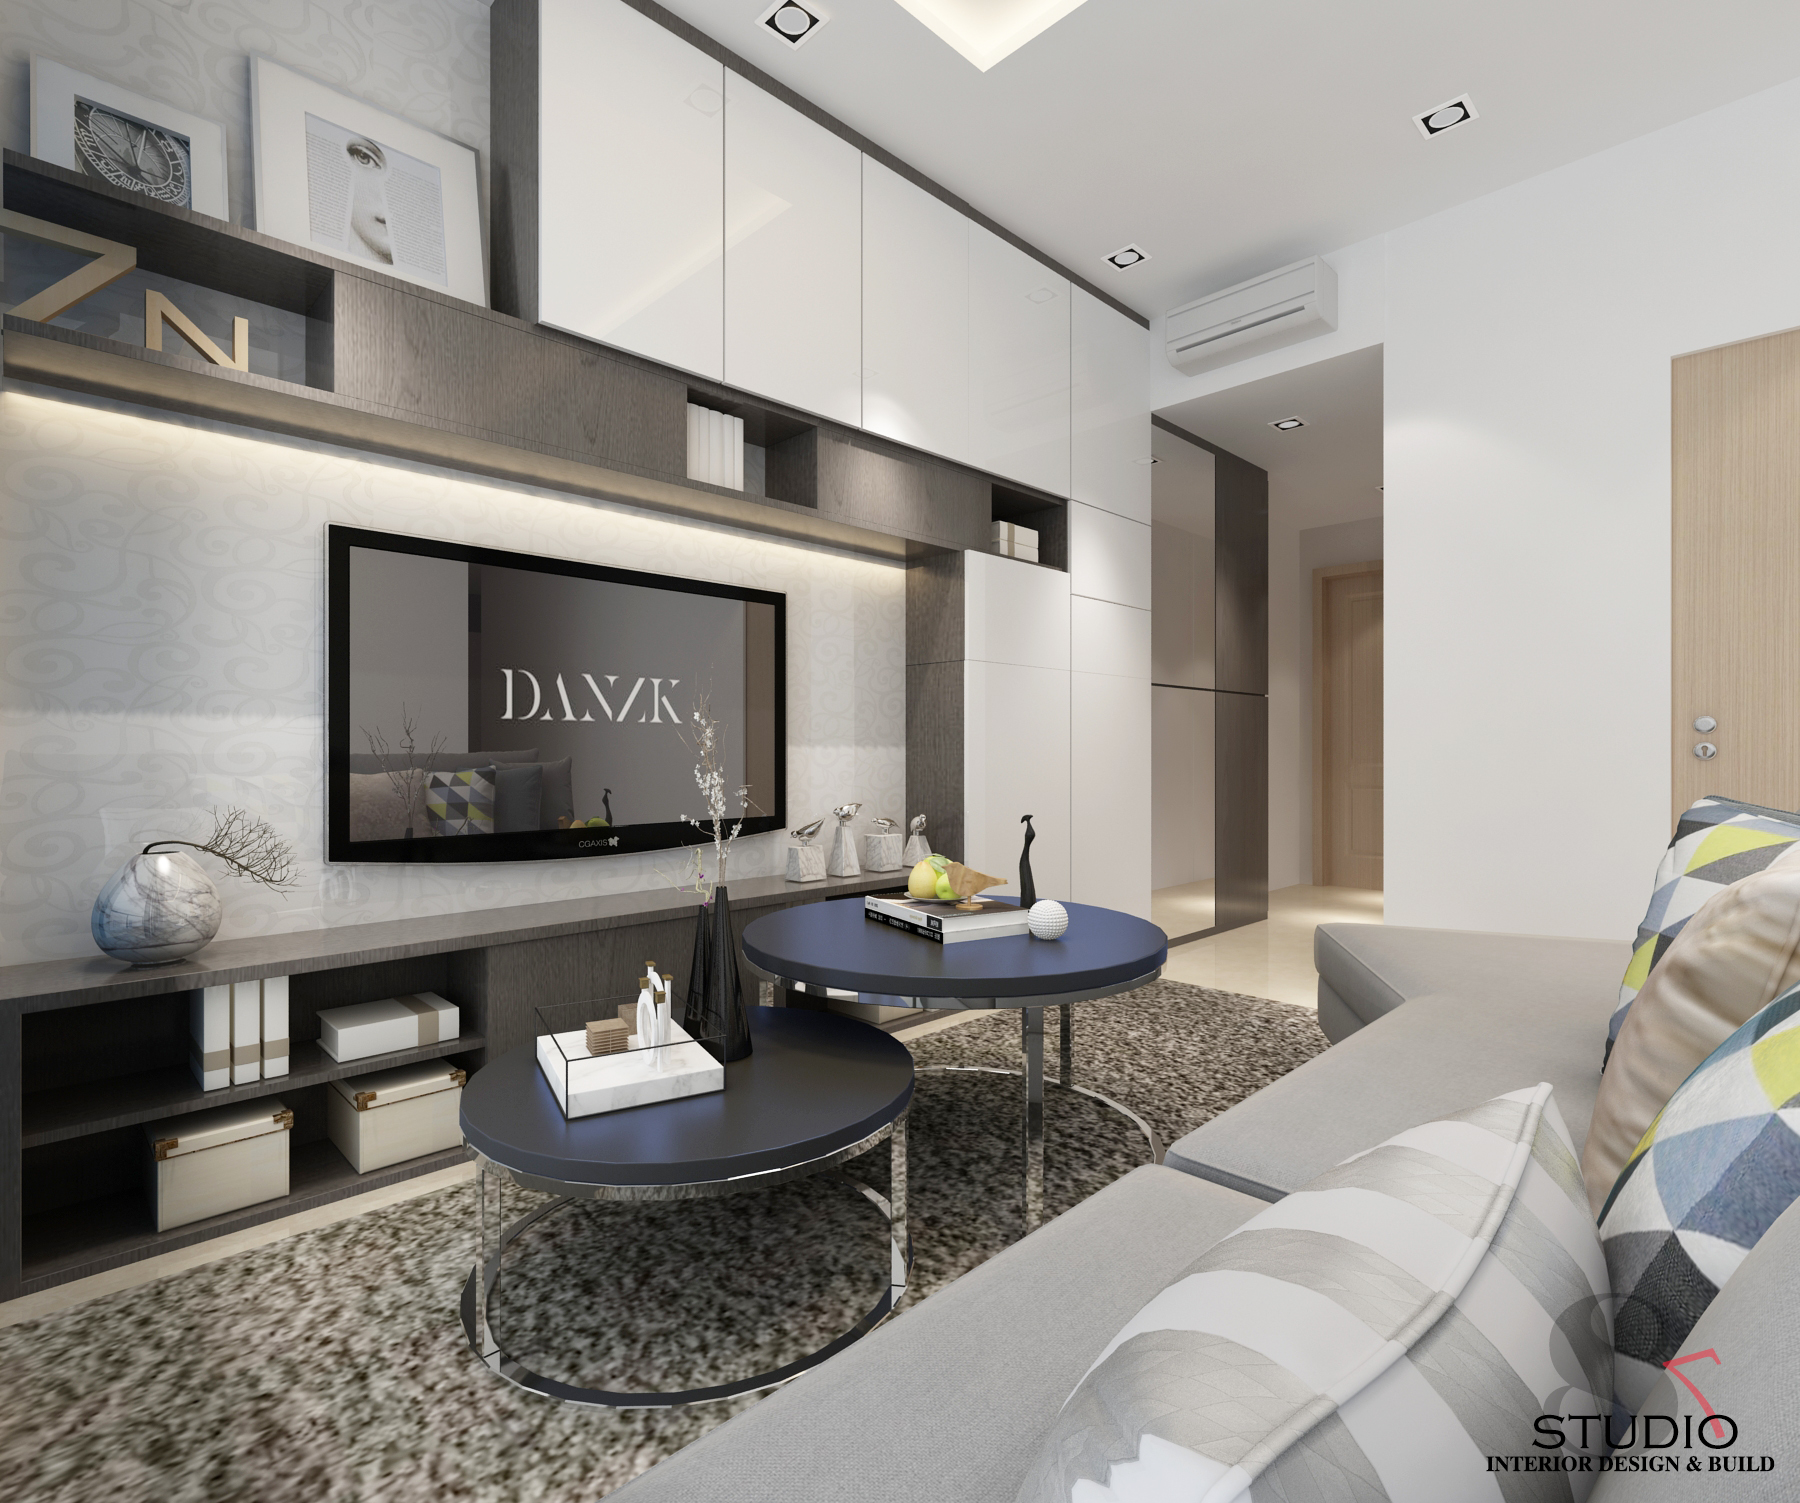 Condo Interior Design Condominium Interior Design Singapore: Condominium (Condo) Interior Design Contractor Singapore